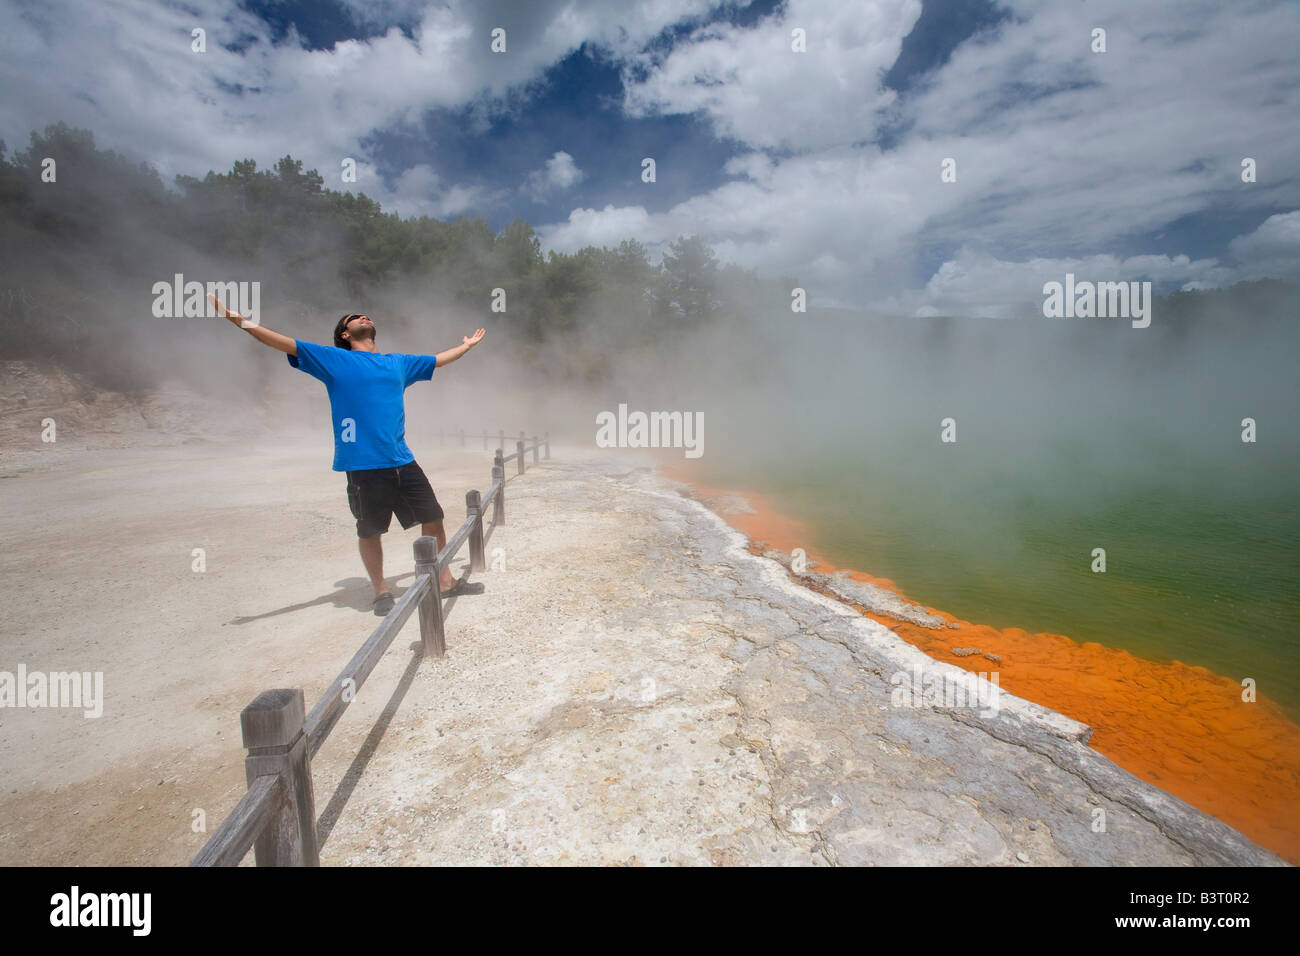 Man at Champagne Pool at geothermal site, Wai-O-Tapu Thermal Wonderland on North Island of New Zealand - Stock Image